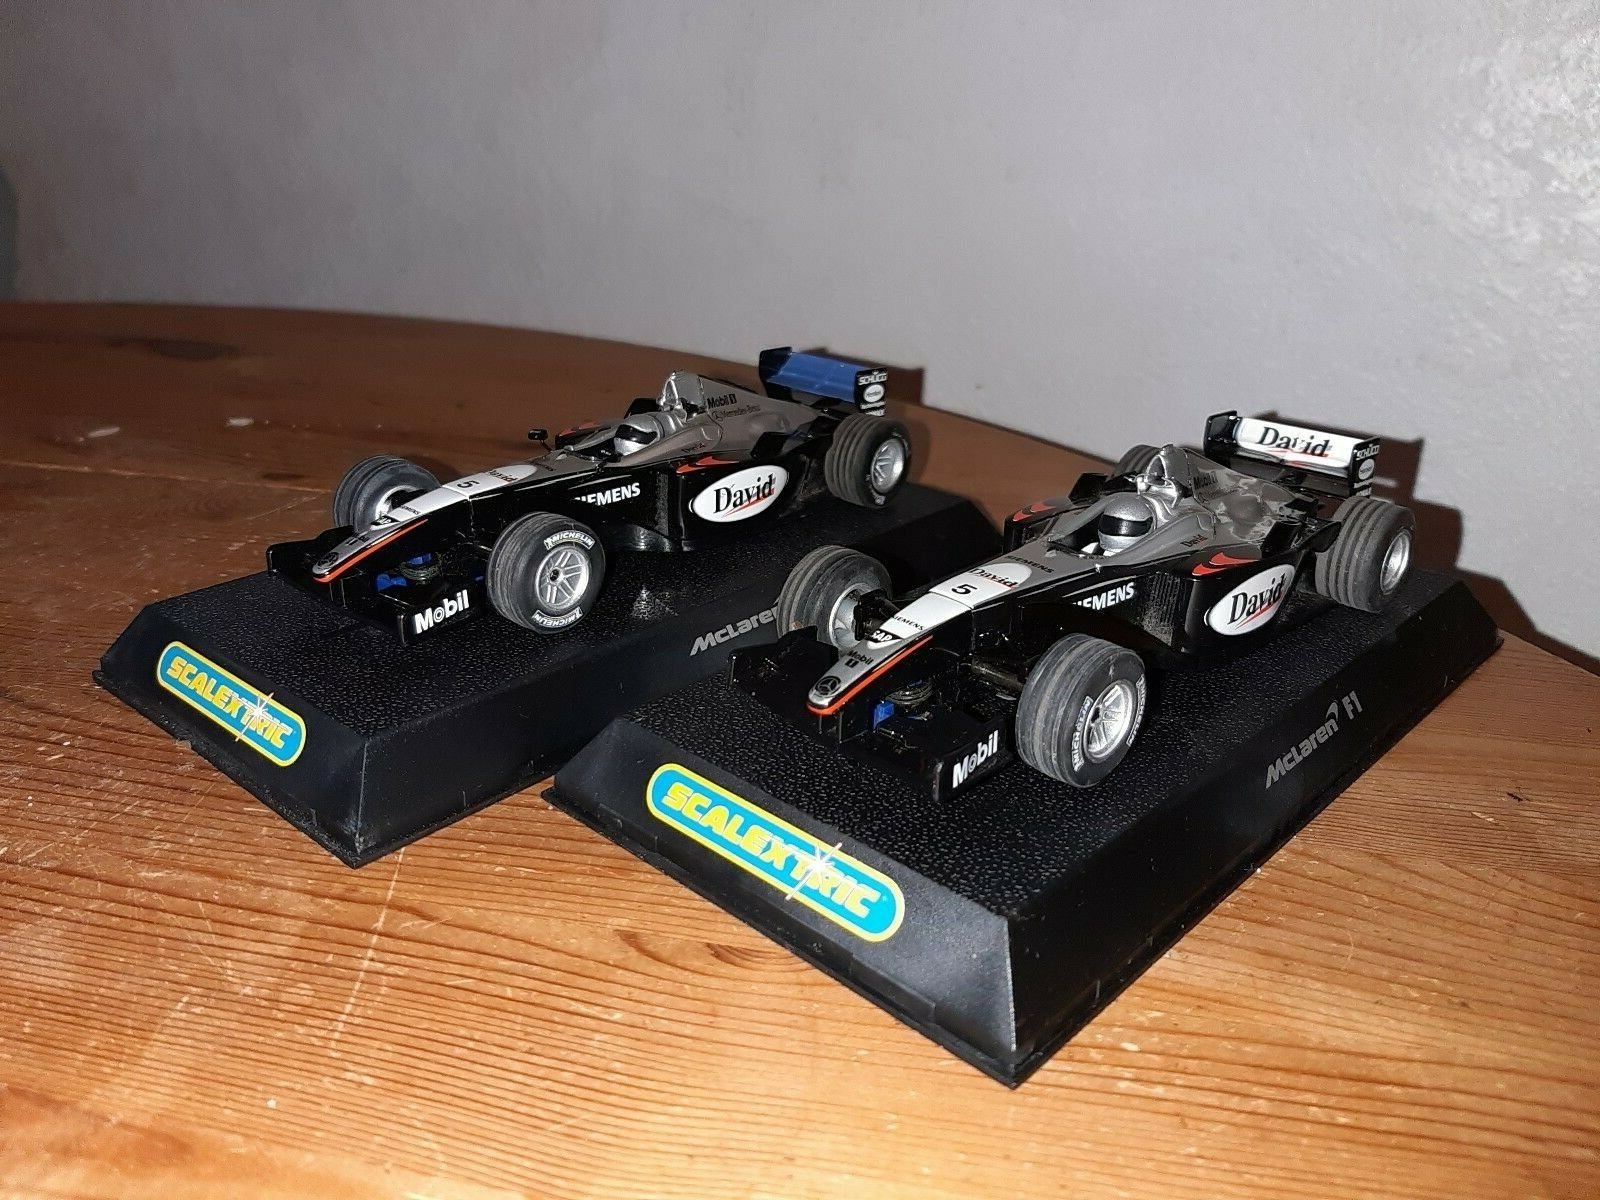 Scalextric Cars 2 x F1 McLaren Mercedes David Coulthard